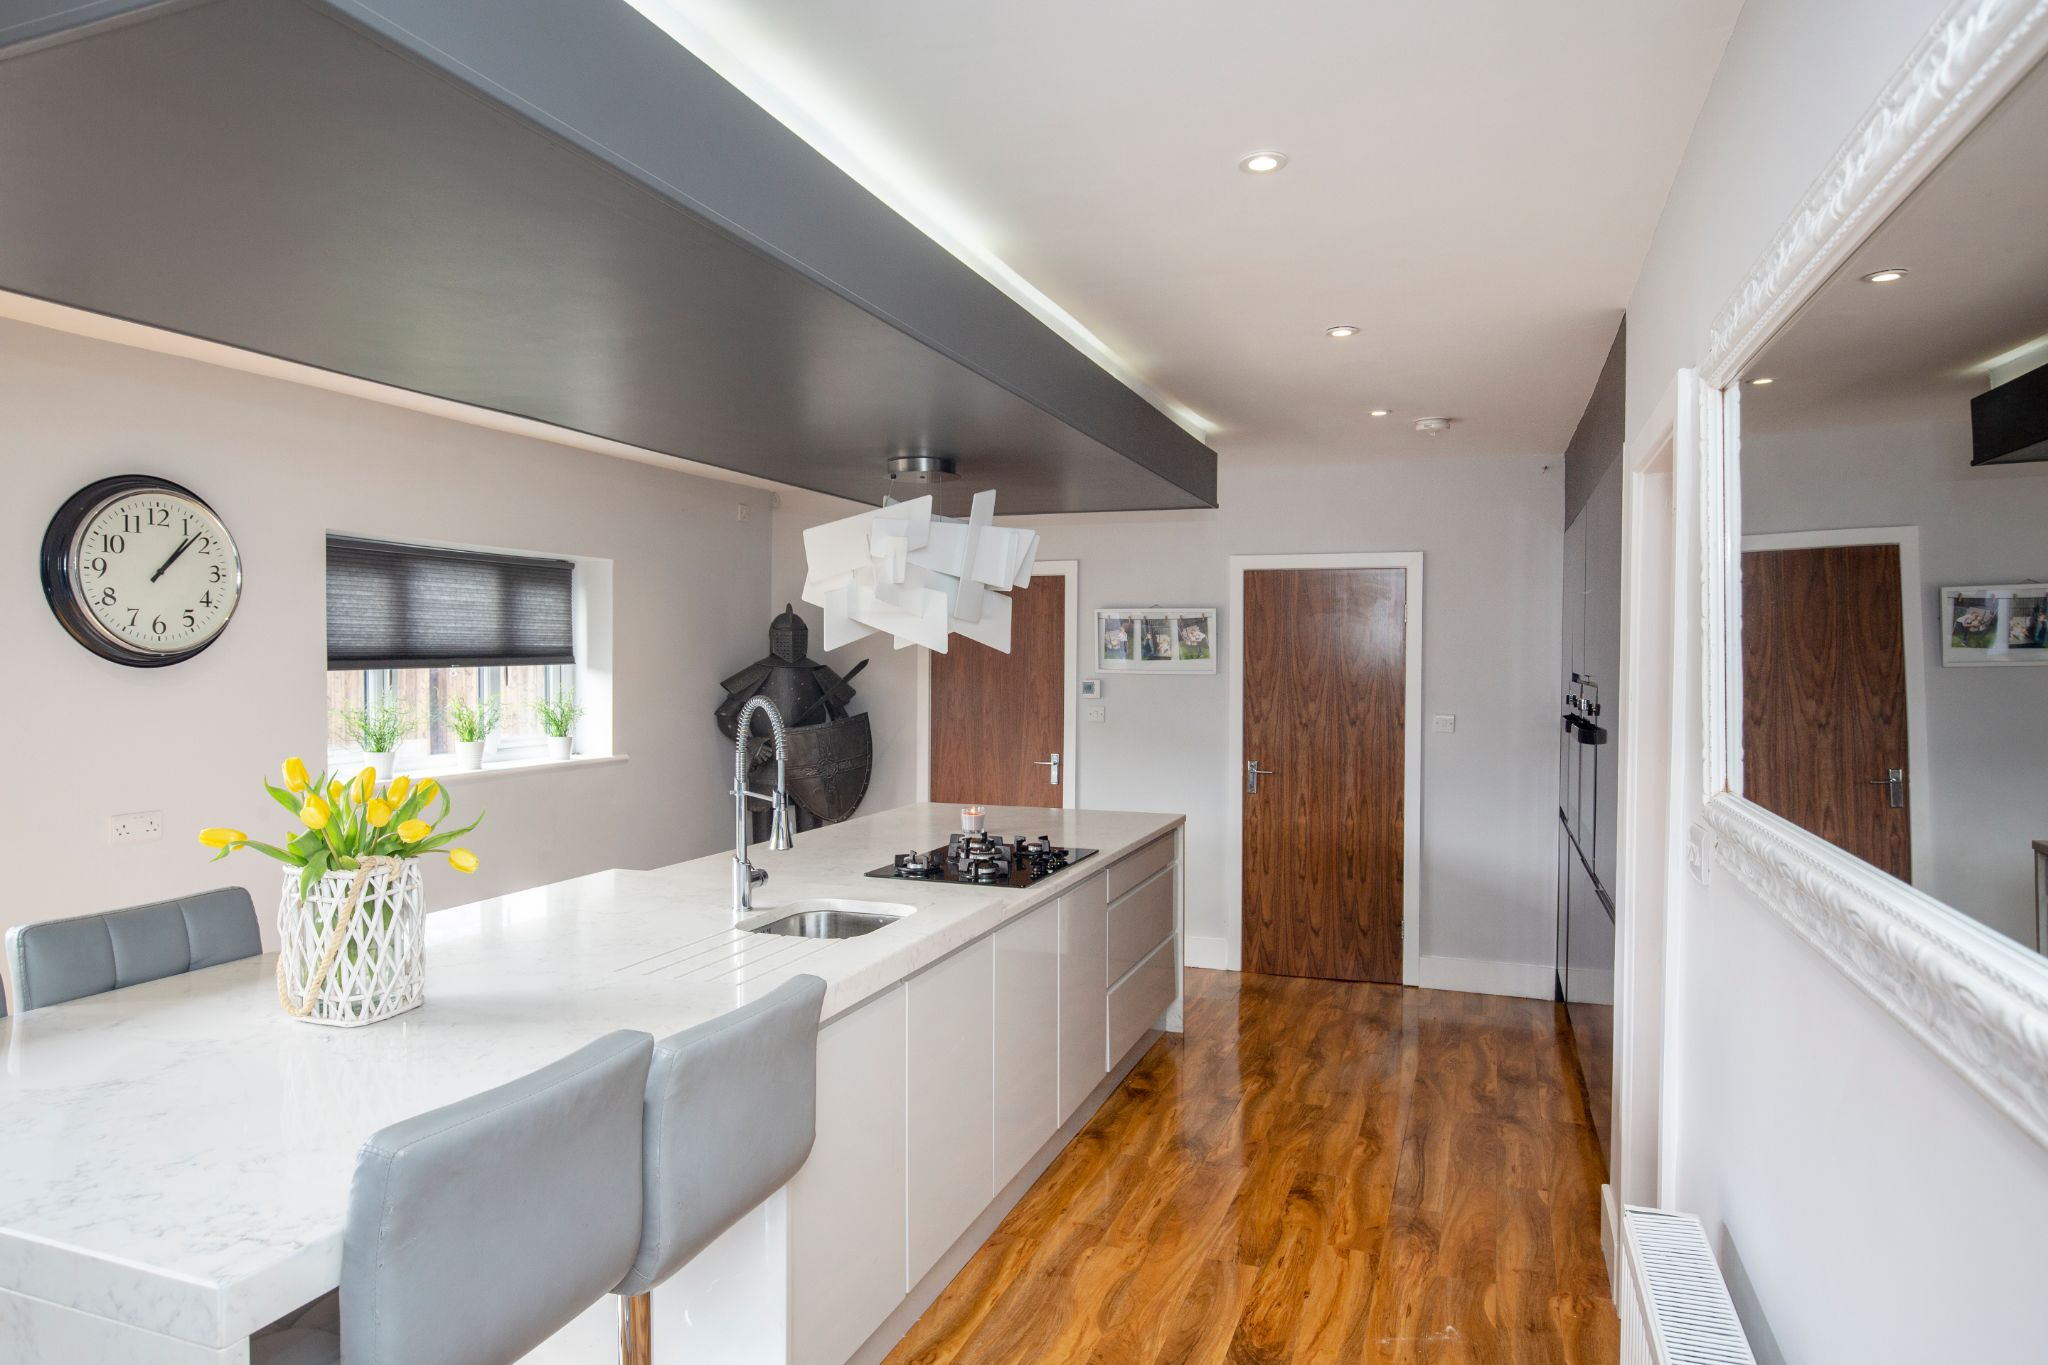 4 bedroom detached house For Sale in Brighouse - Kitchen area of dining kitchen